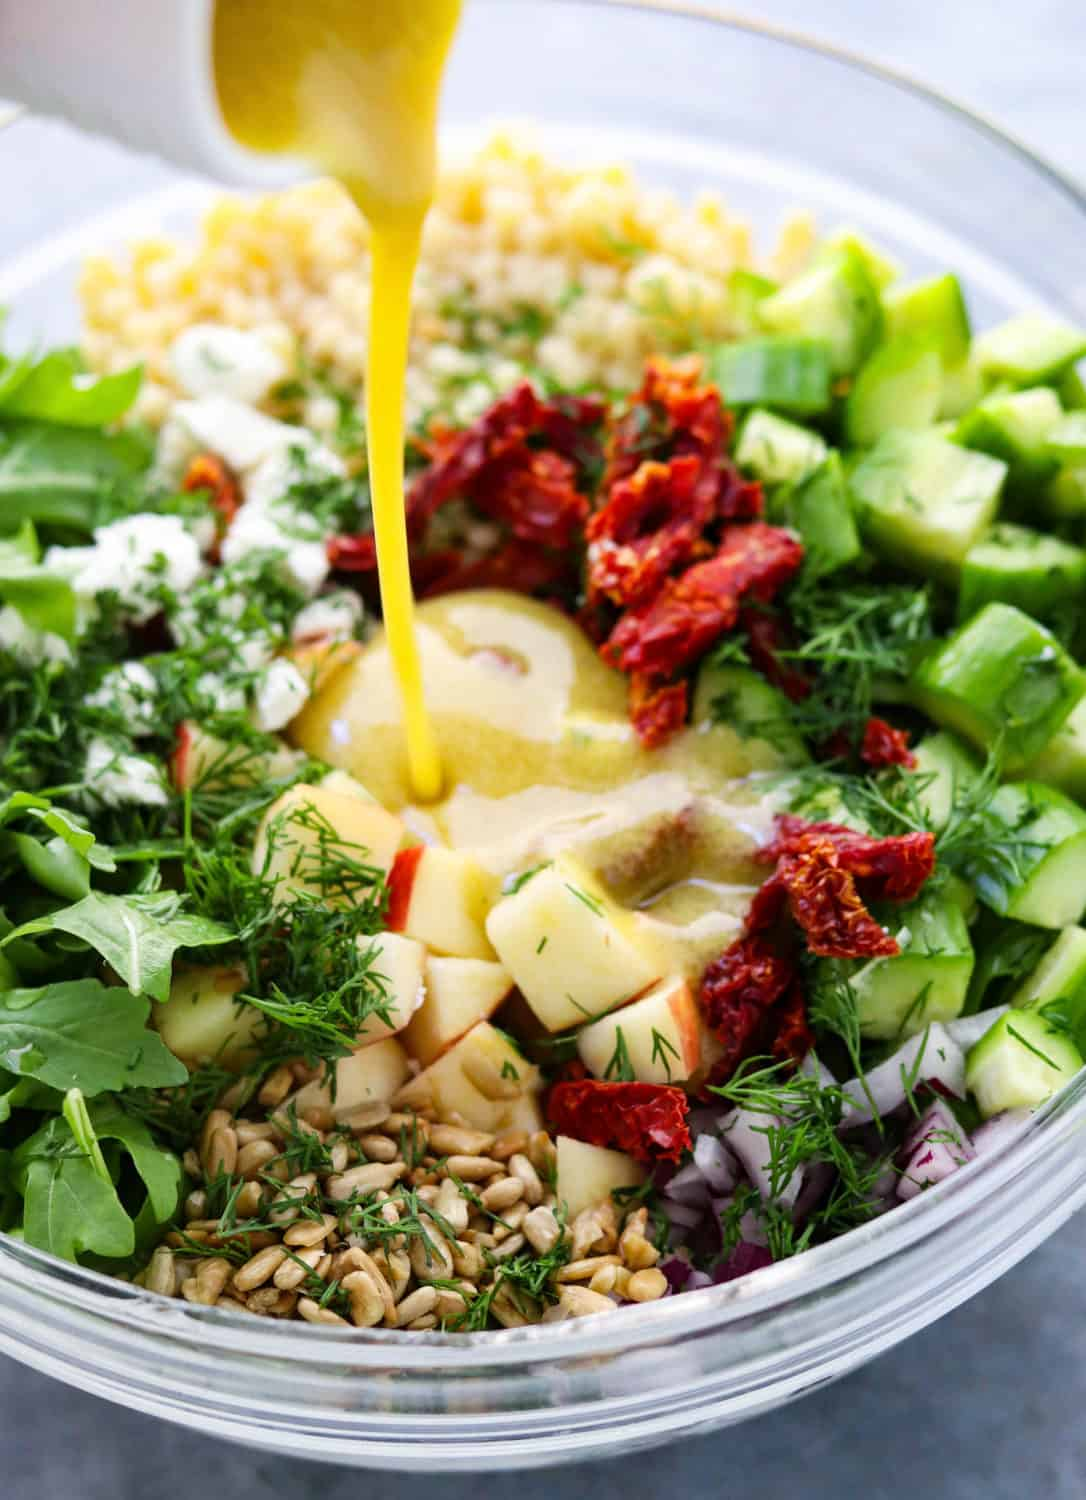 pouring mustard dressing into a bowl filled with Israeli couscous salad